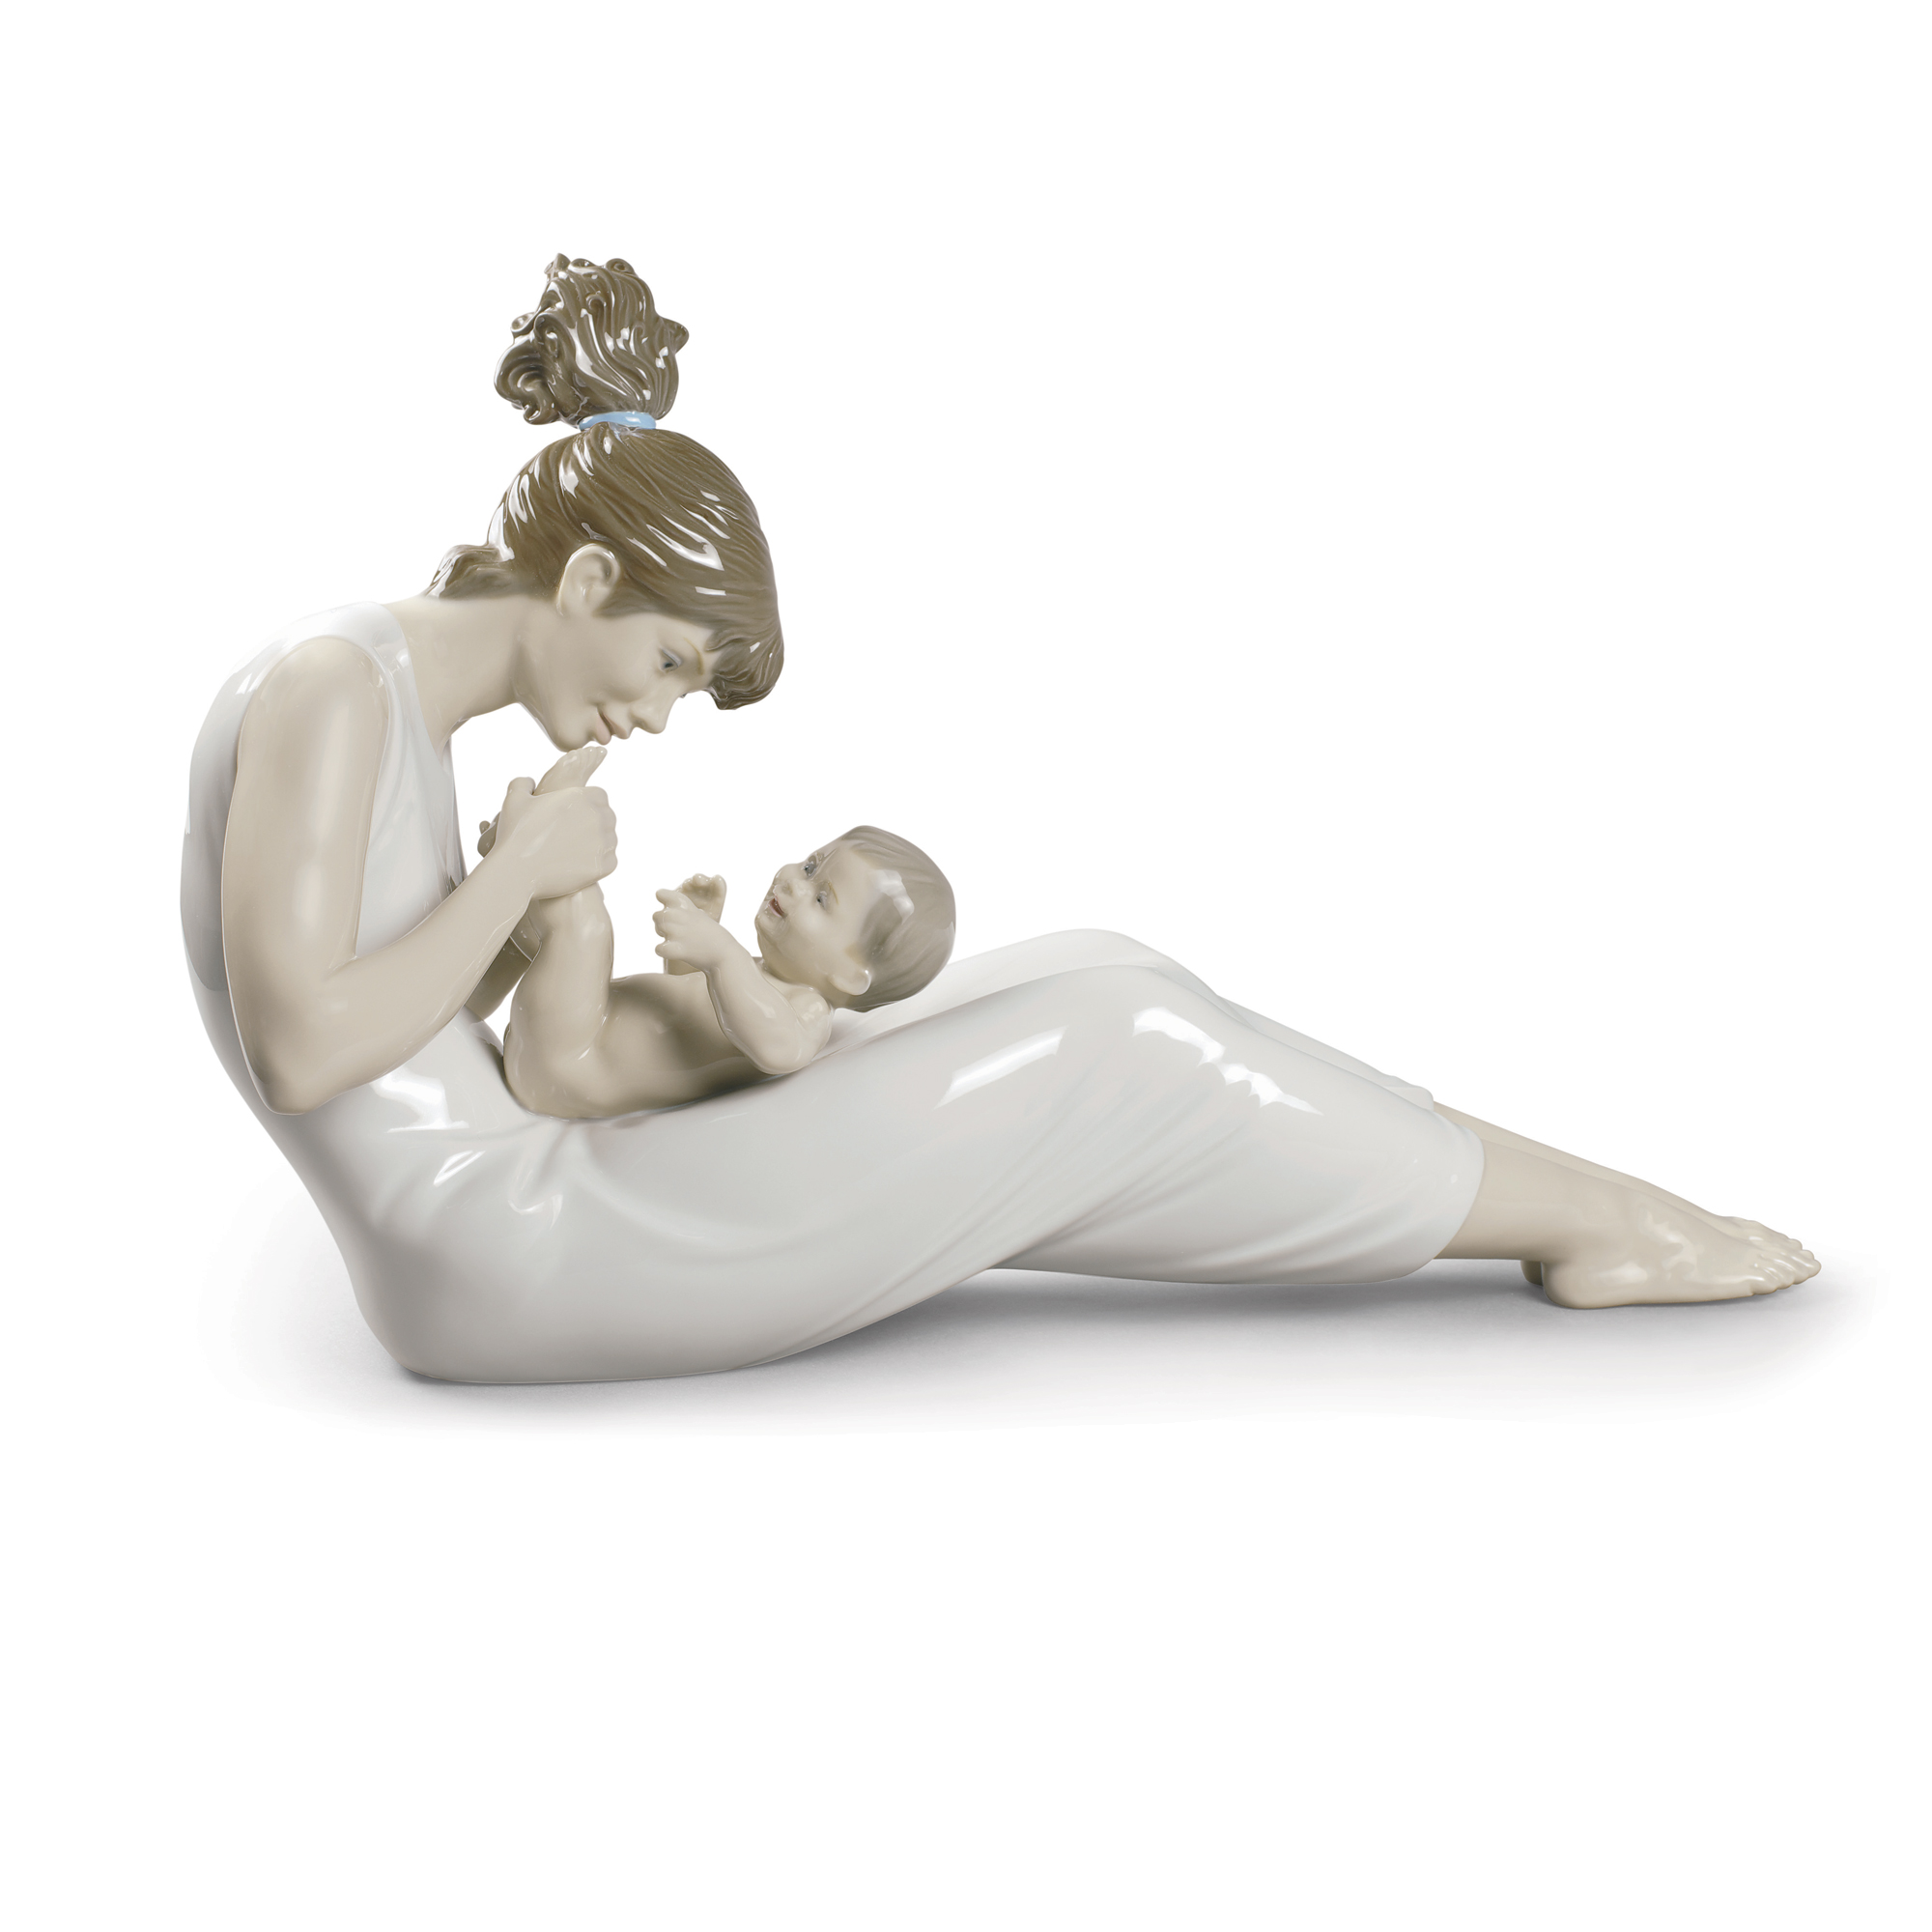 Giggles With Mom 1009152 - Lladro Figure